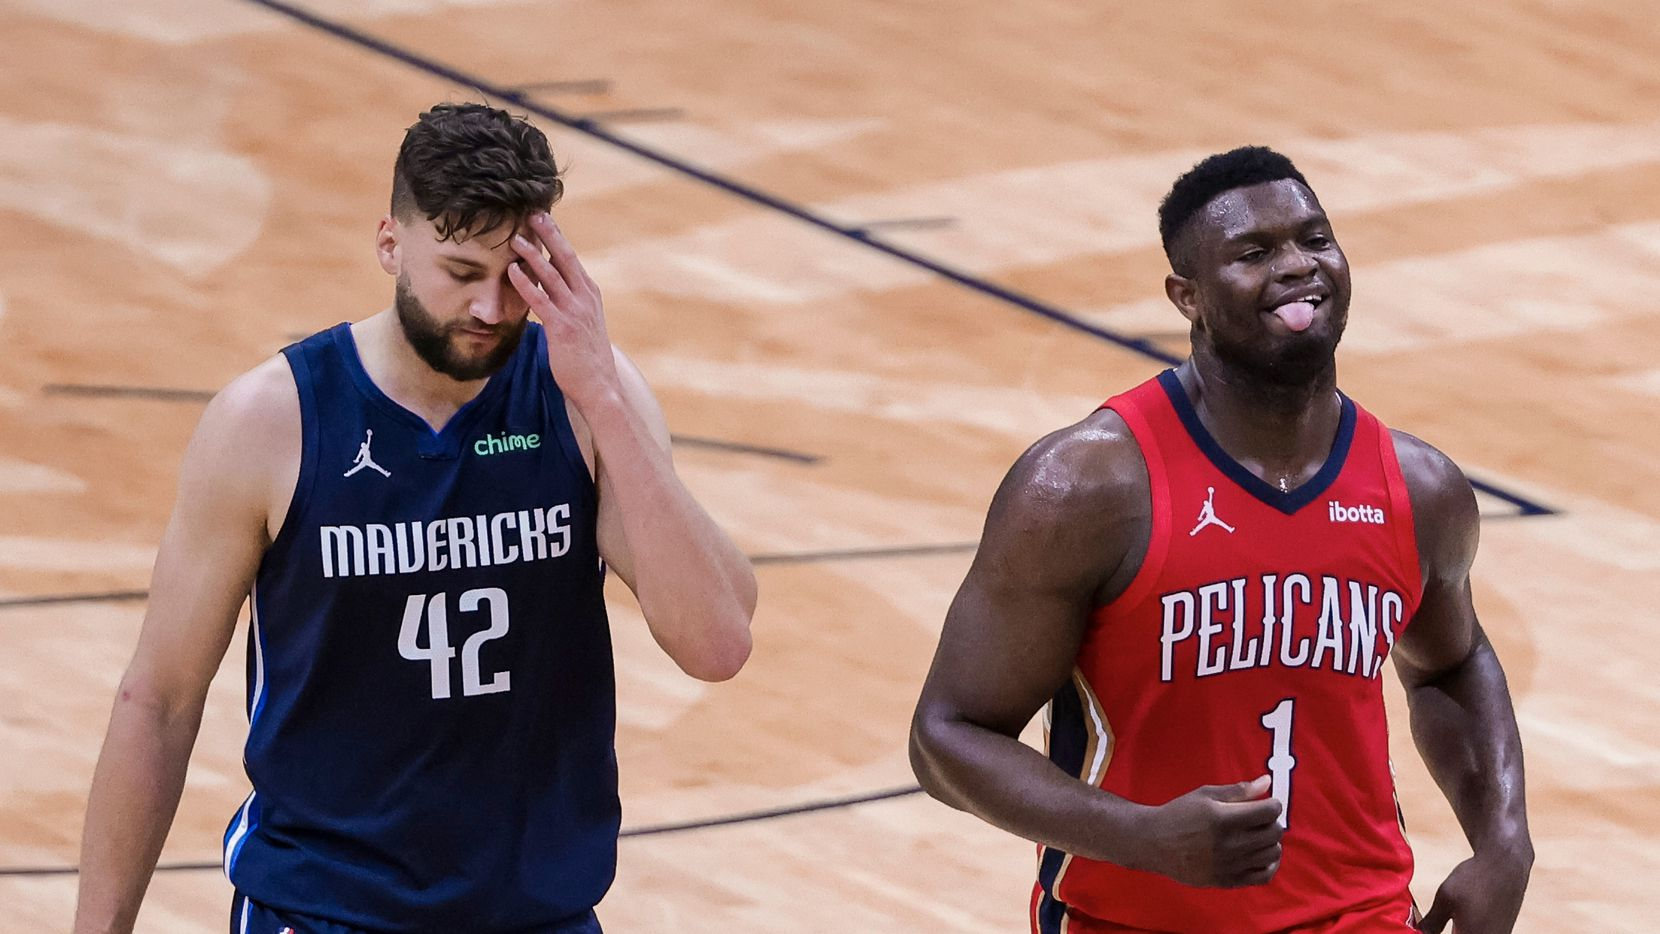 New Orleans Pelicans forward Zion Williamson (1) and Dallas Mavericks forward Maxi Kleber (42) react following a basket in the second quarter of an NBA basketball game in New Orleans, Saturday, March 27, 2021. (AP Photo/Derick Hingle)